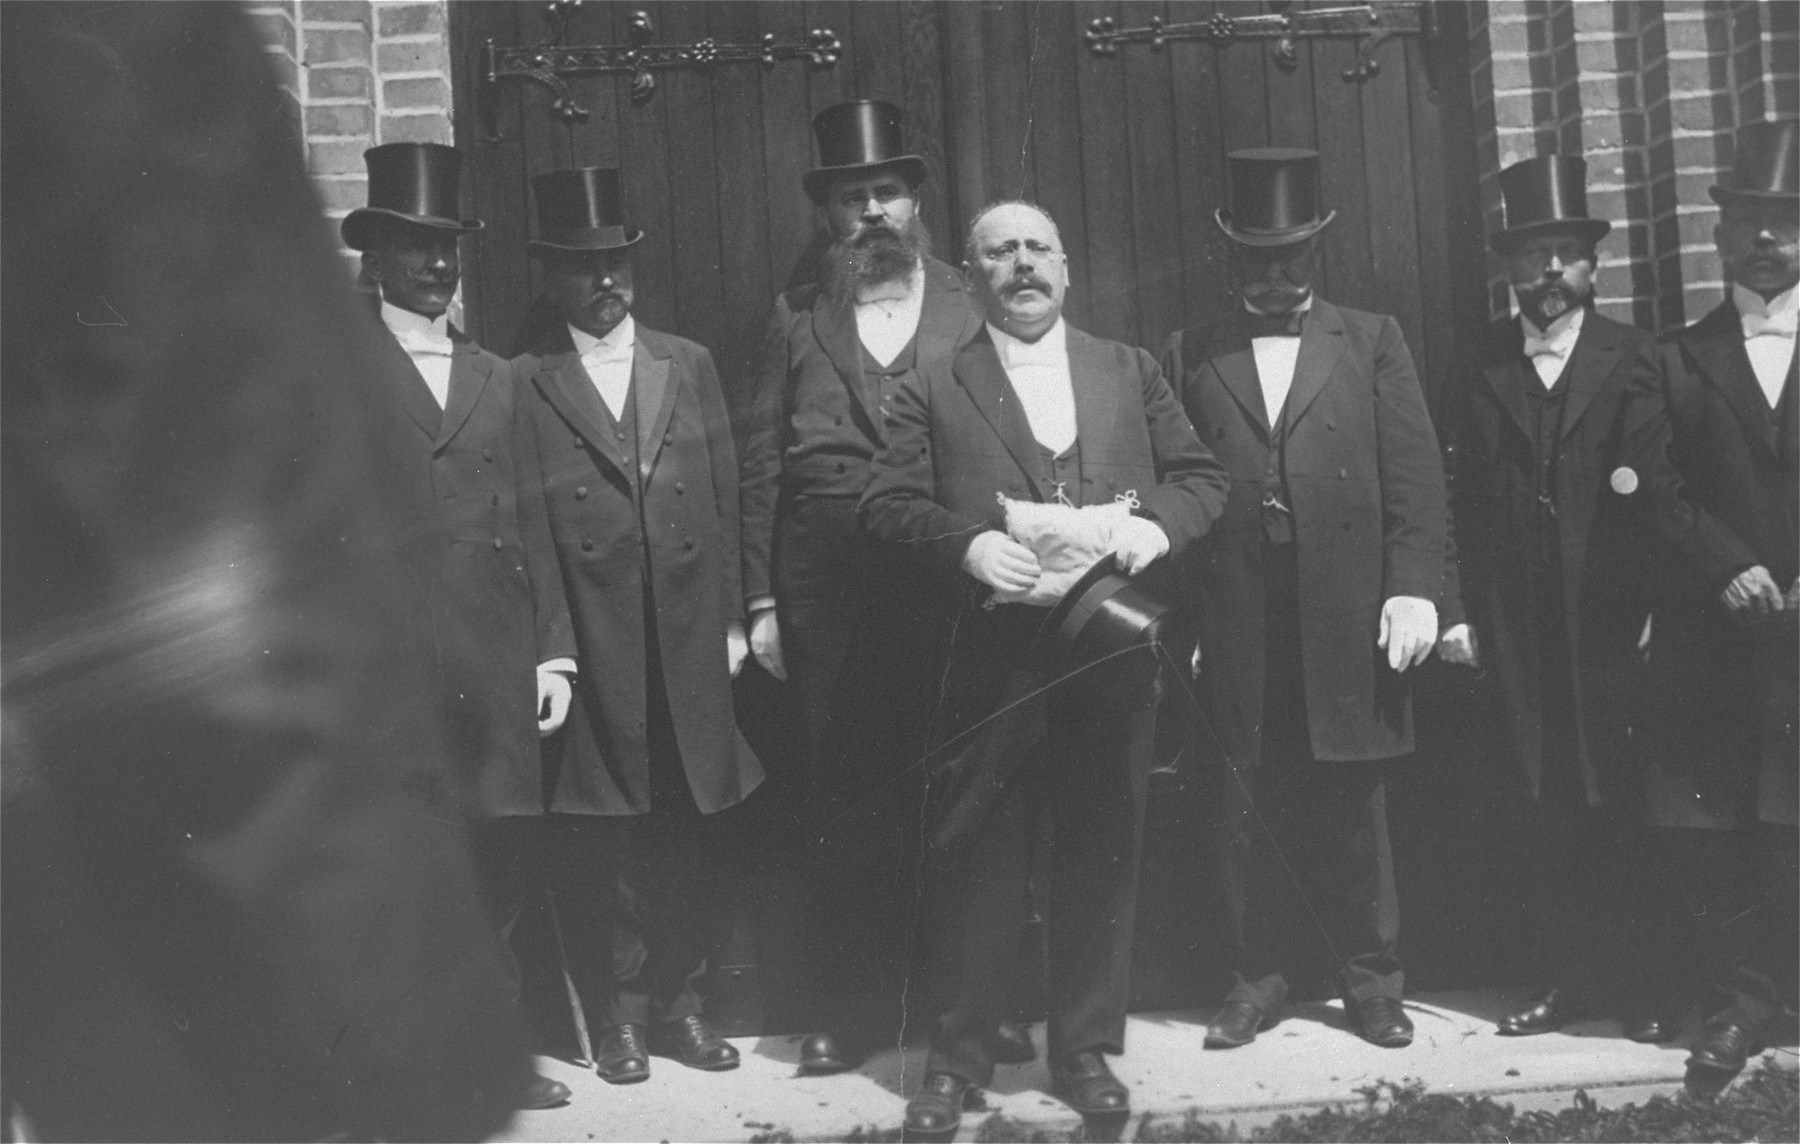 Prominent Jews dressed in top hats attend the dedication of the synagogue in Rastenburg, East Prussia.  Speaking is Max Jaruslawsky (the great-great uncle of the donor, George Fogelman).